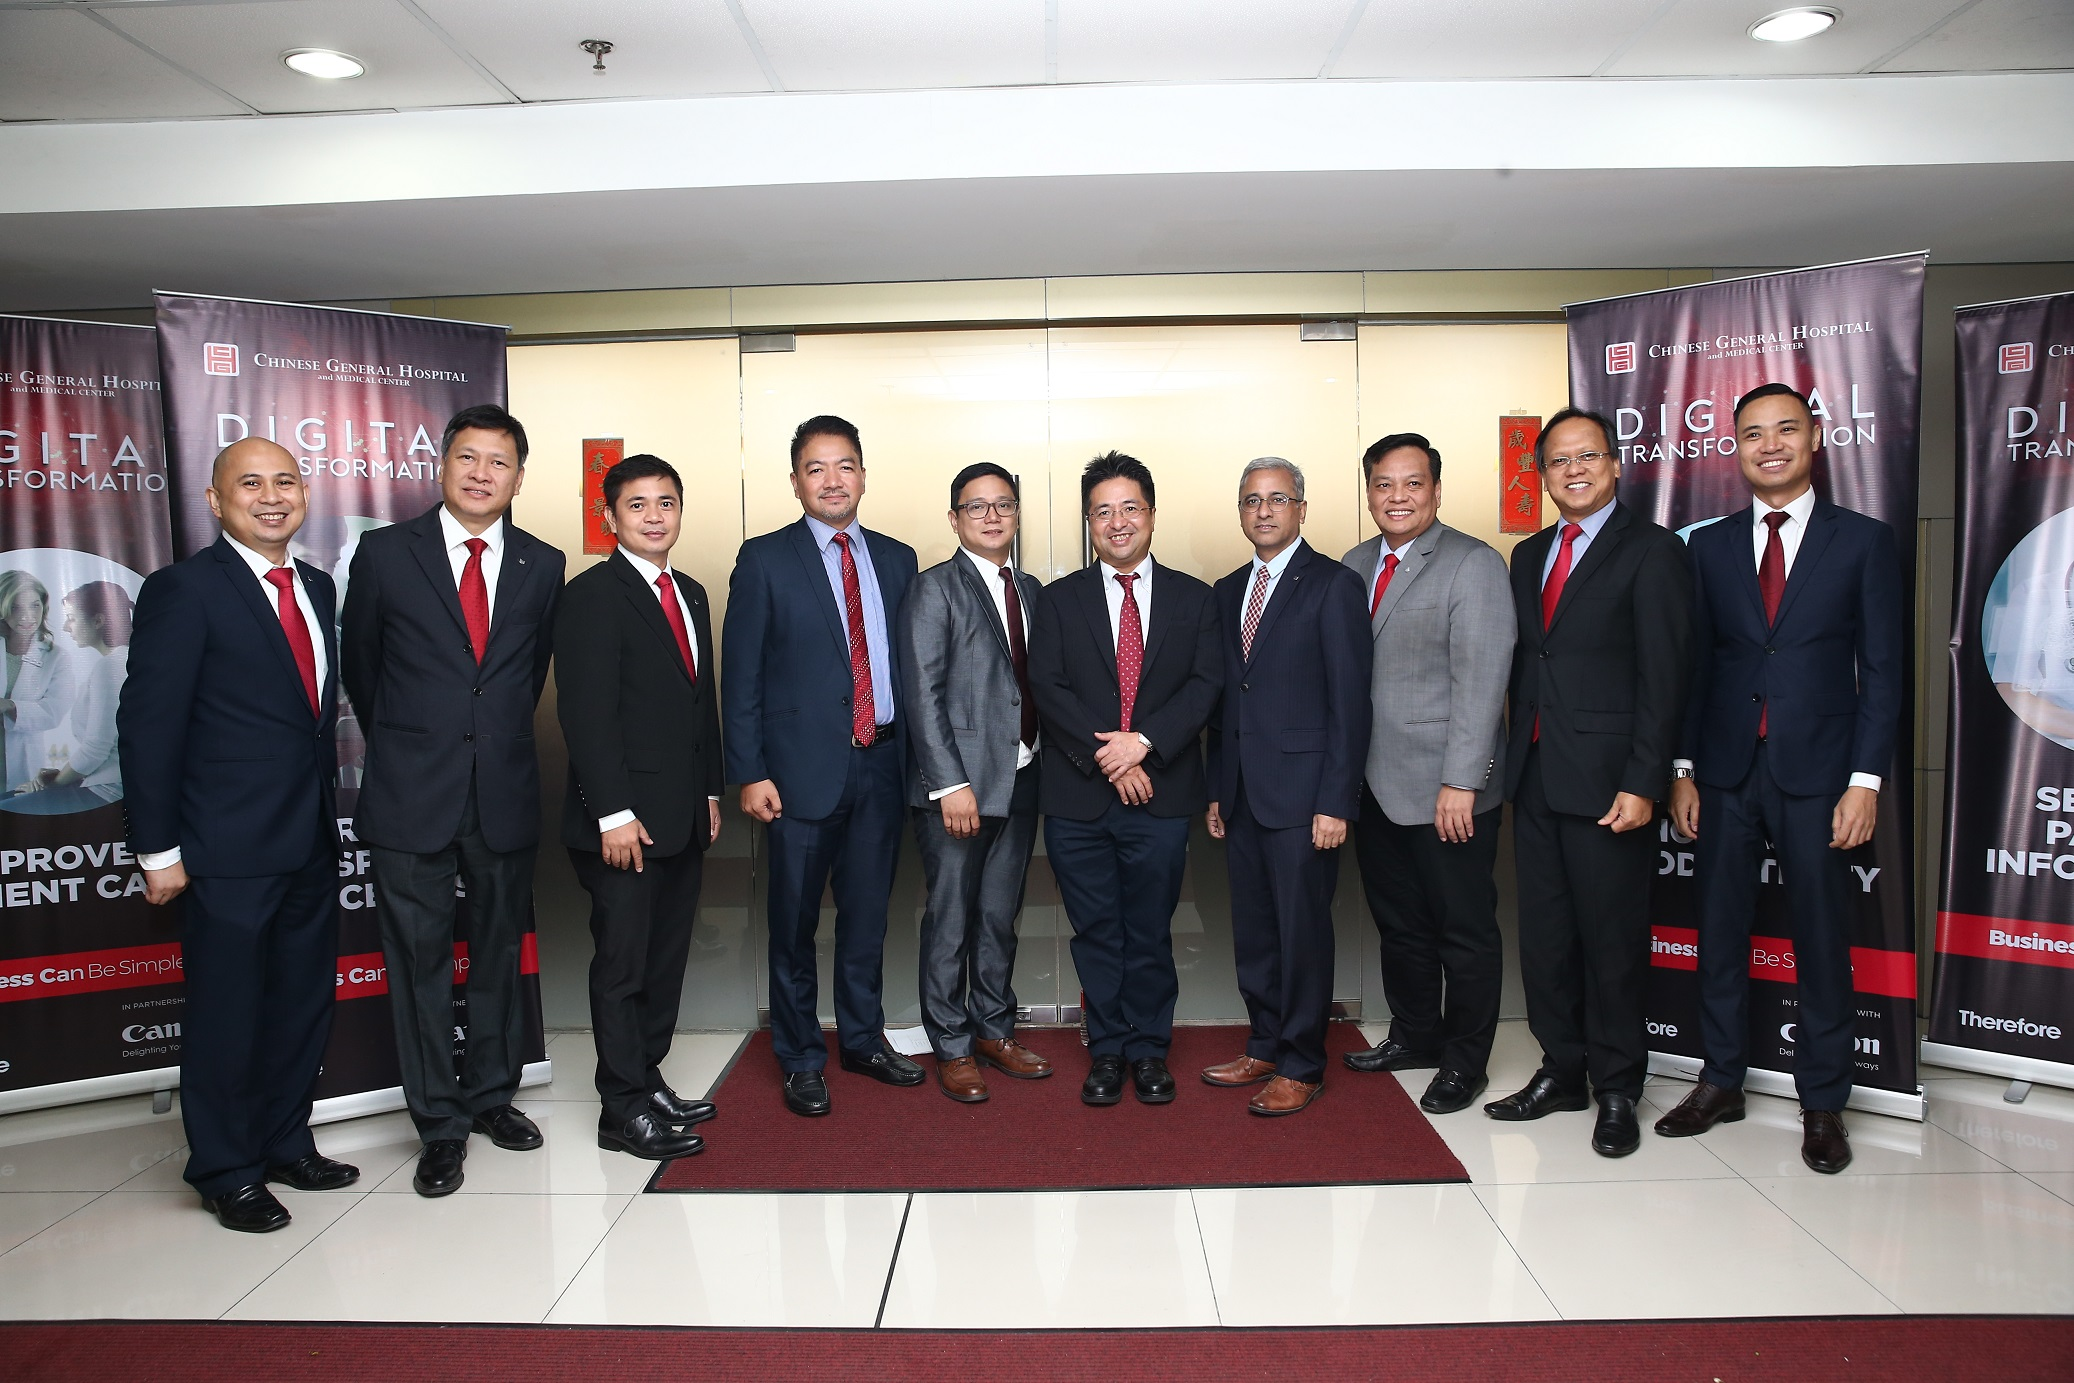 Canon Marketing Philippines Inc. and Chinese General Hospital and Medical Center launch partnership to revamp and modernize the hospital's operations through digital transformation